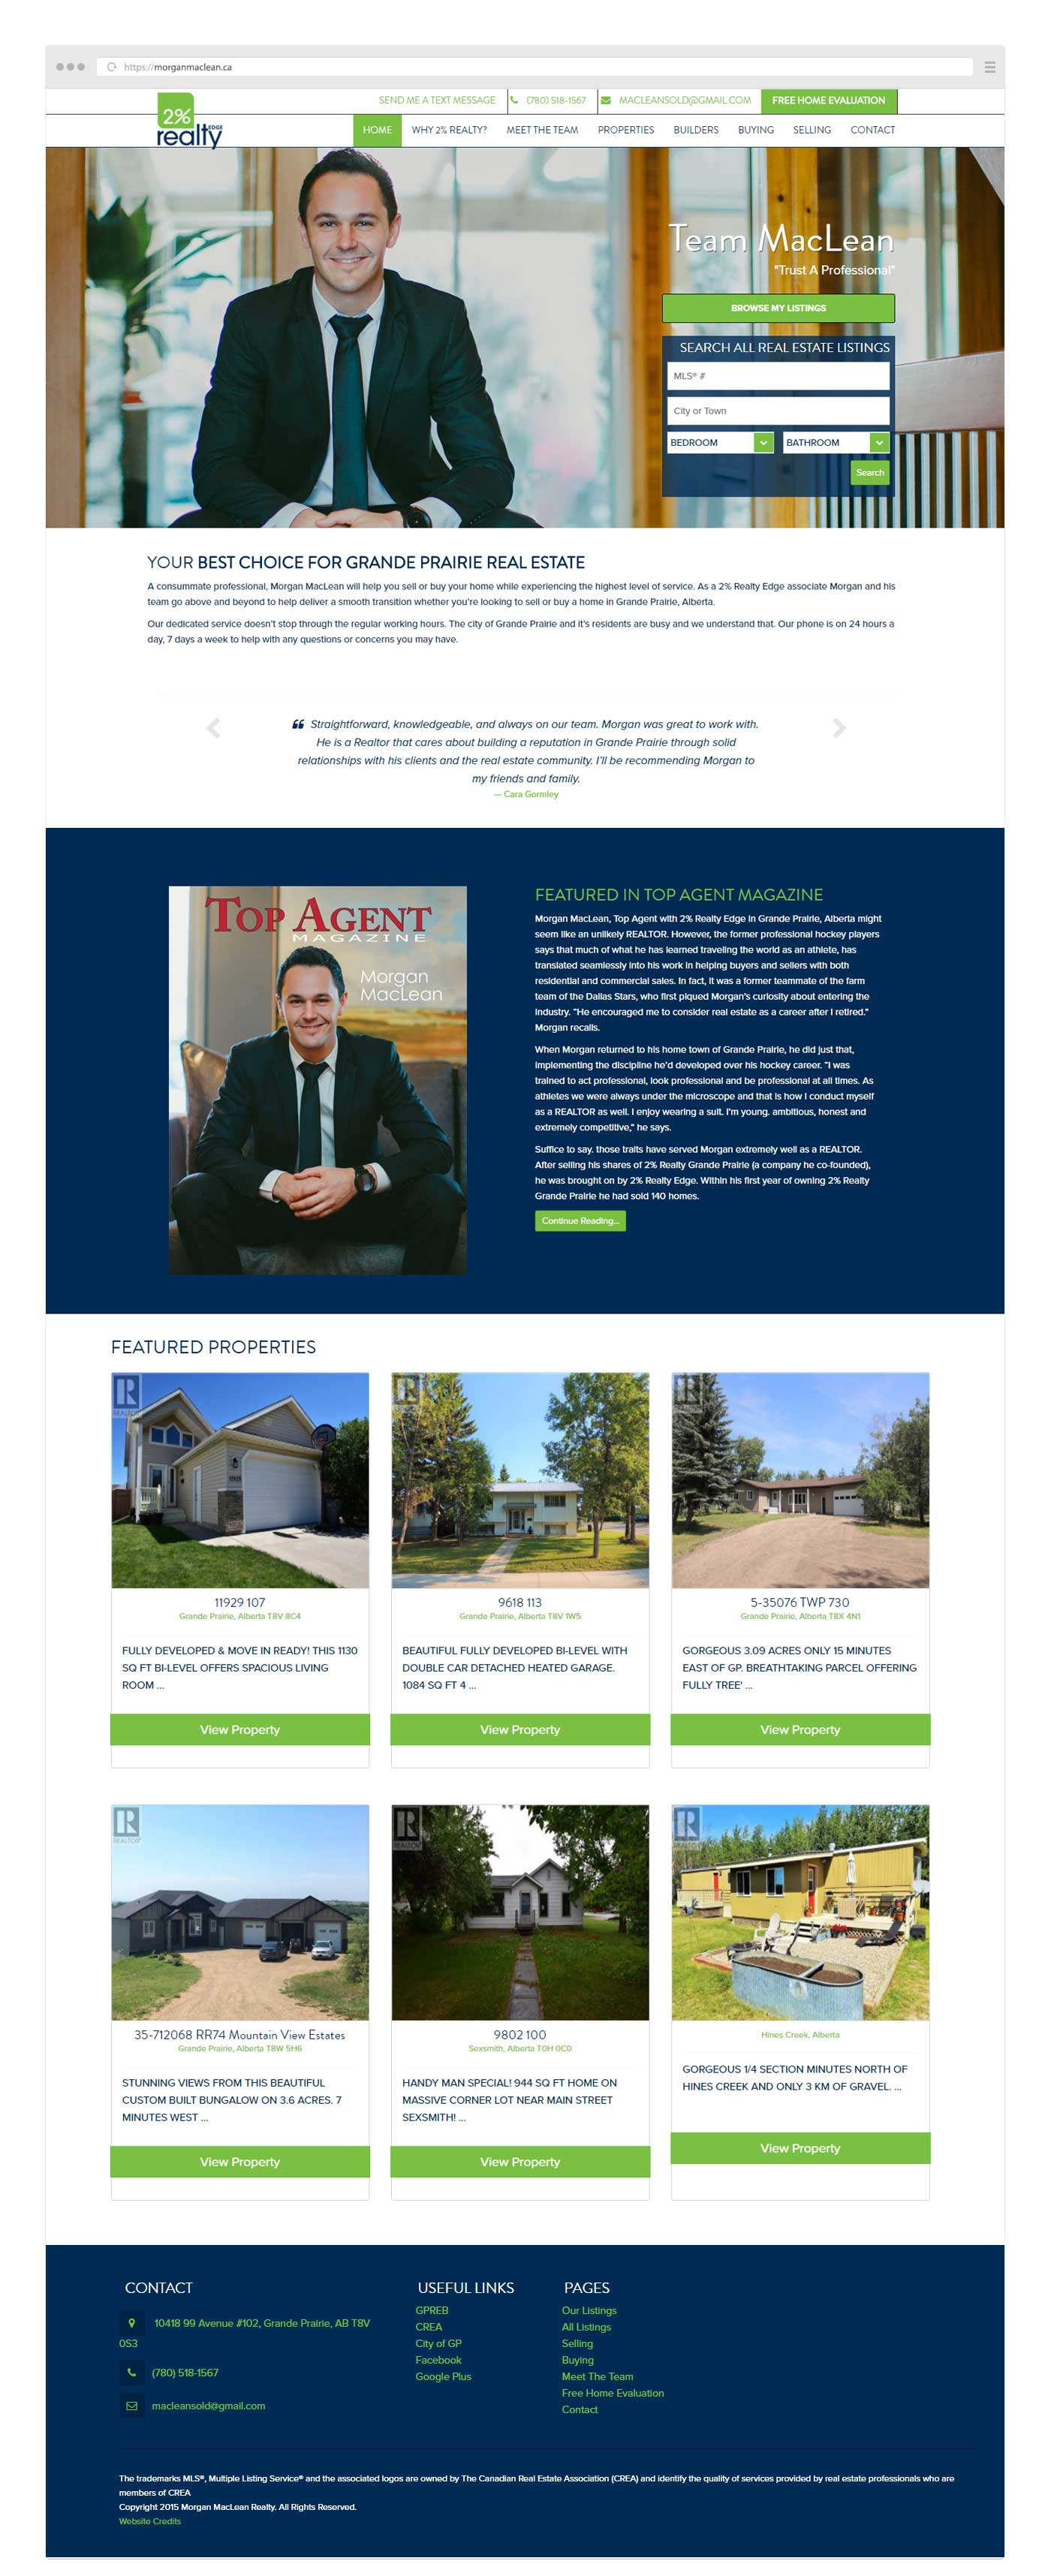 Web Design layout for Team MacLean in Grande Prairie